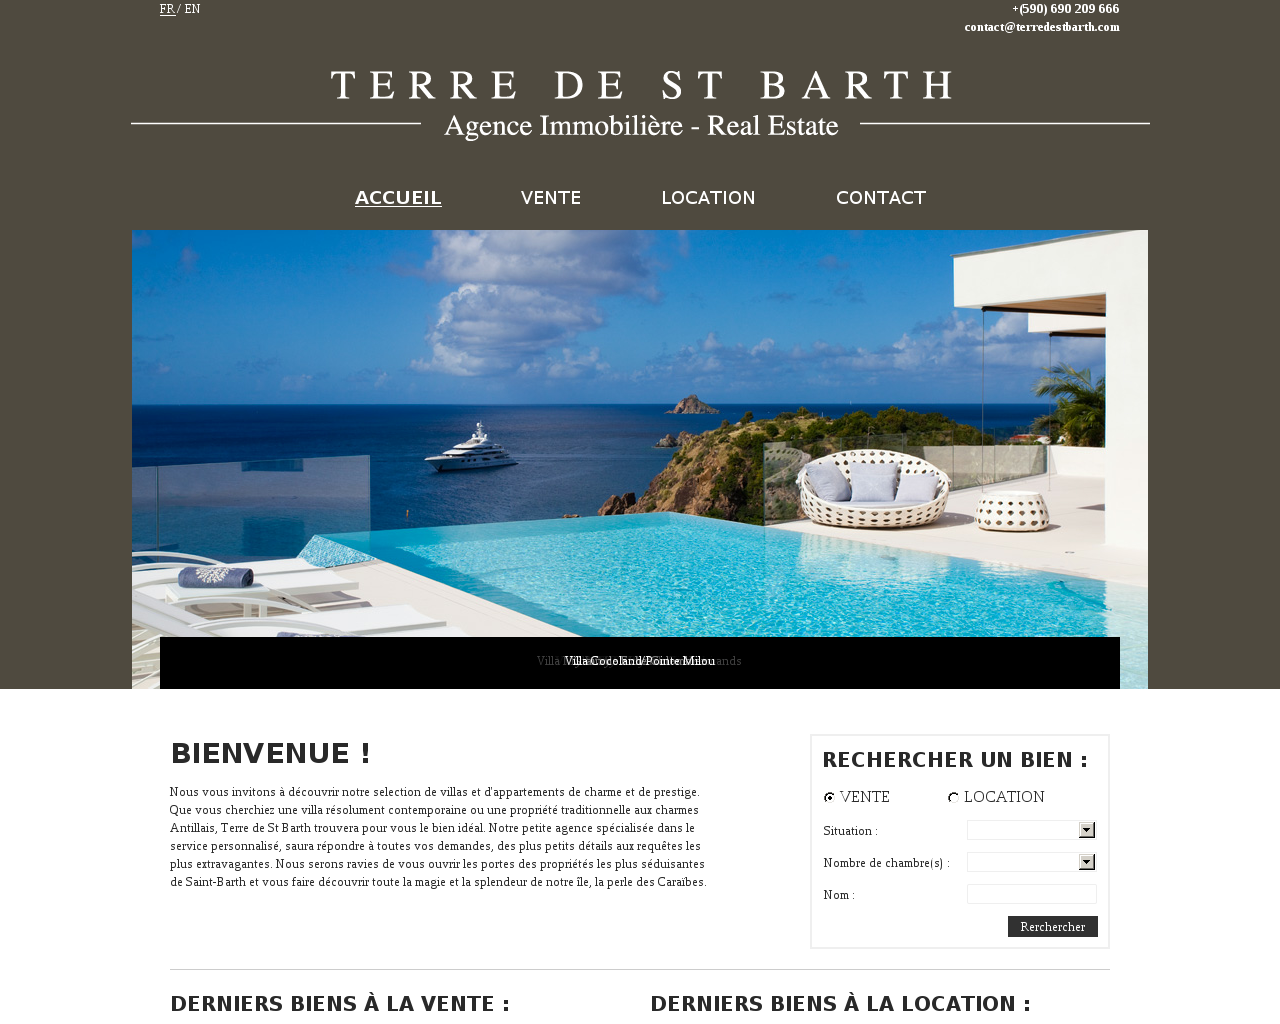 Agences immobili res sur la commune de saint barthelemy for Agence immobiliere 47